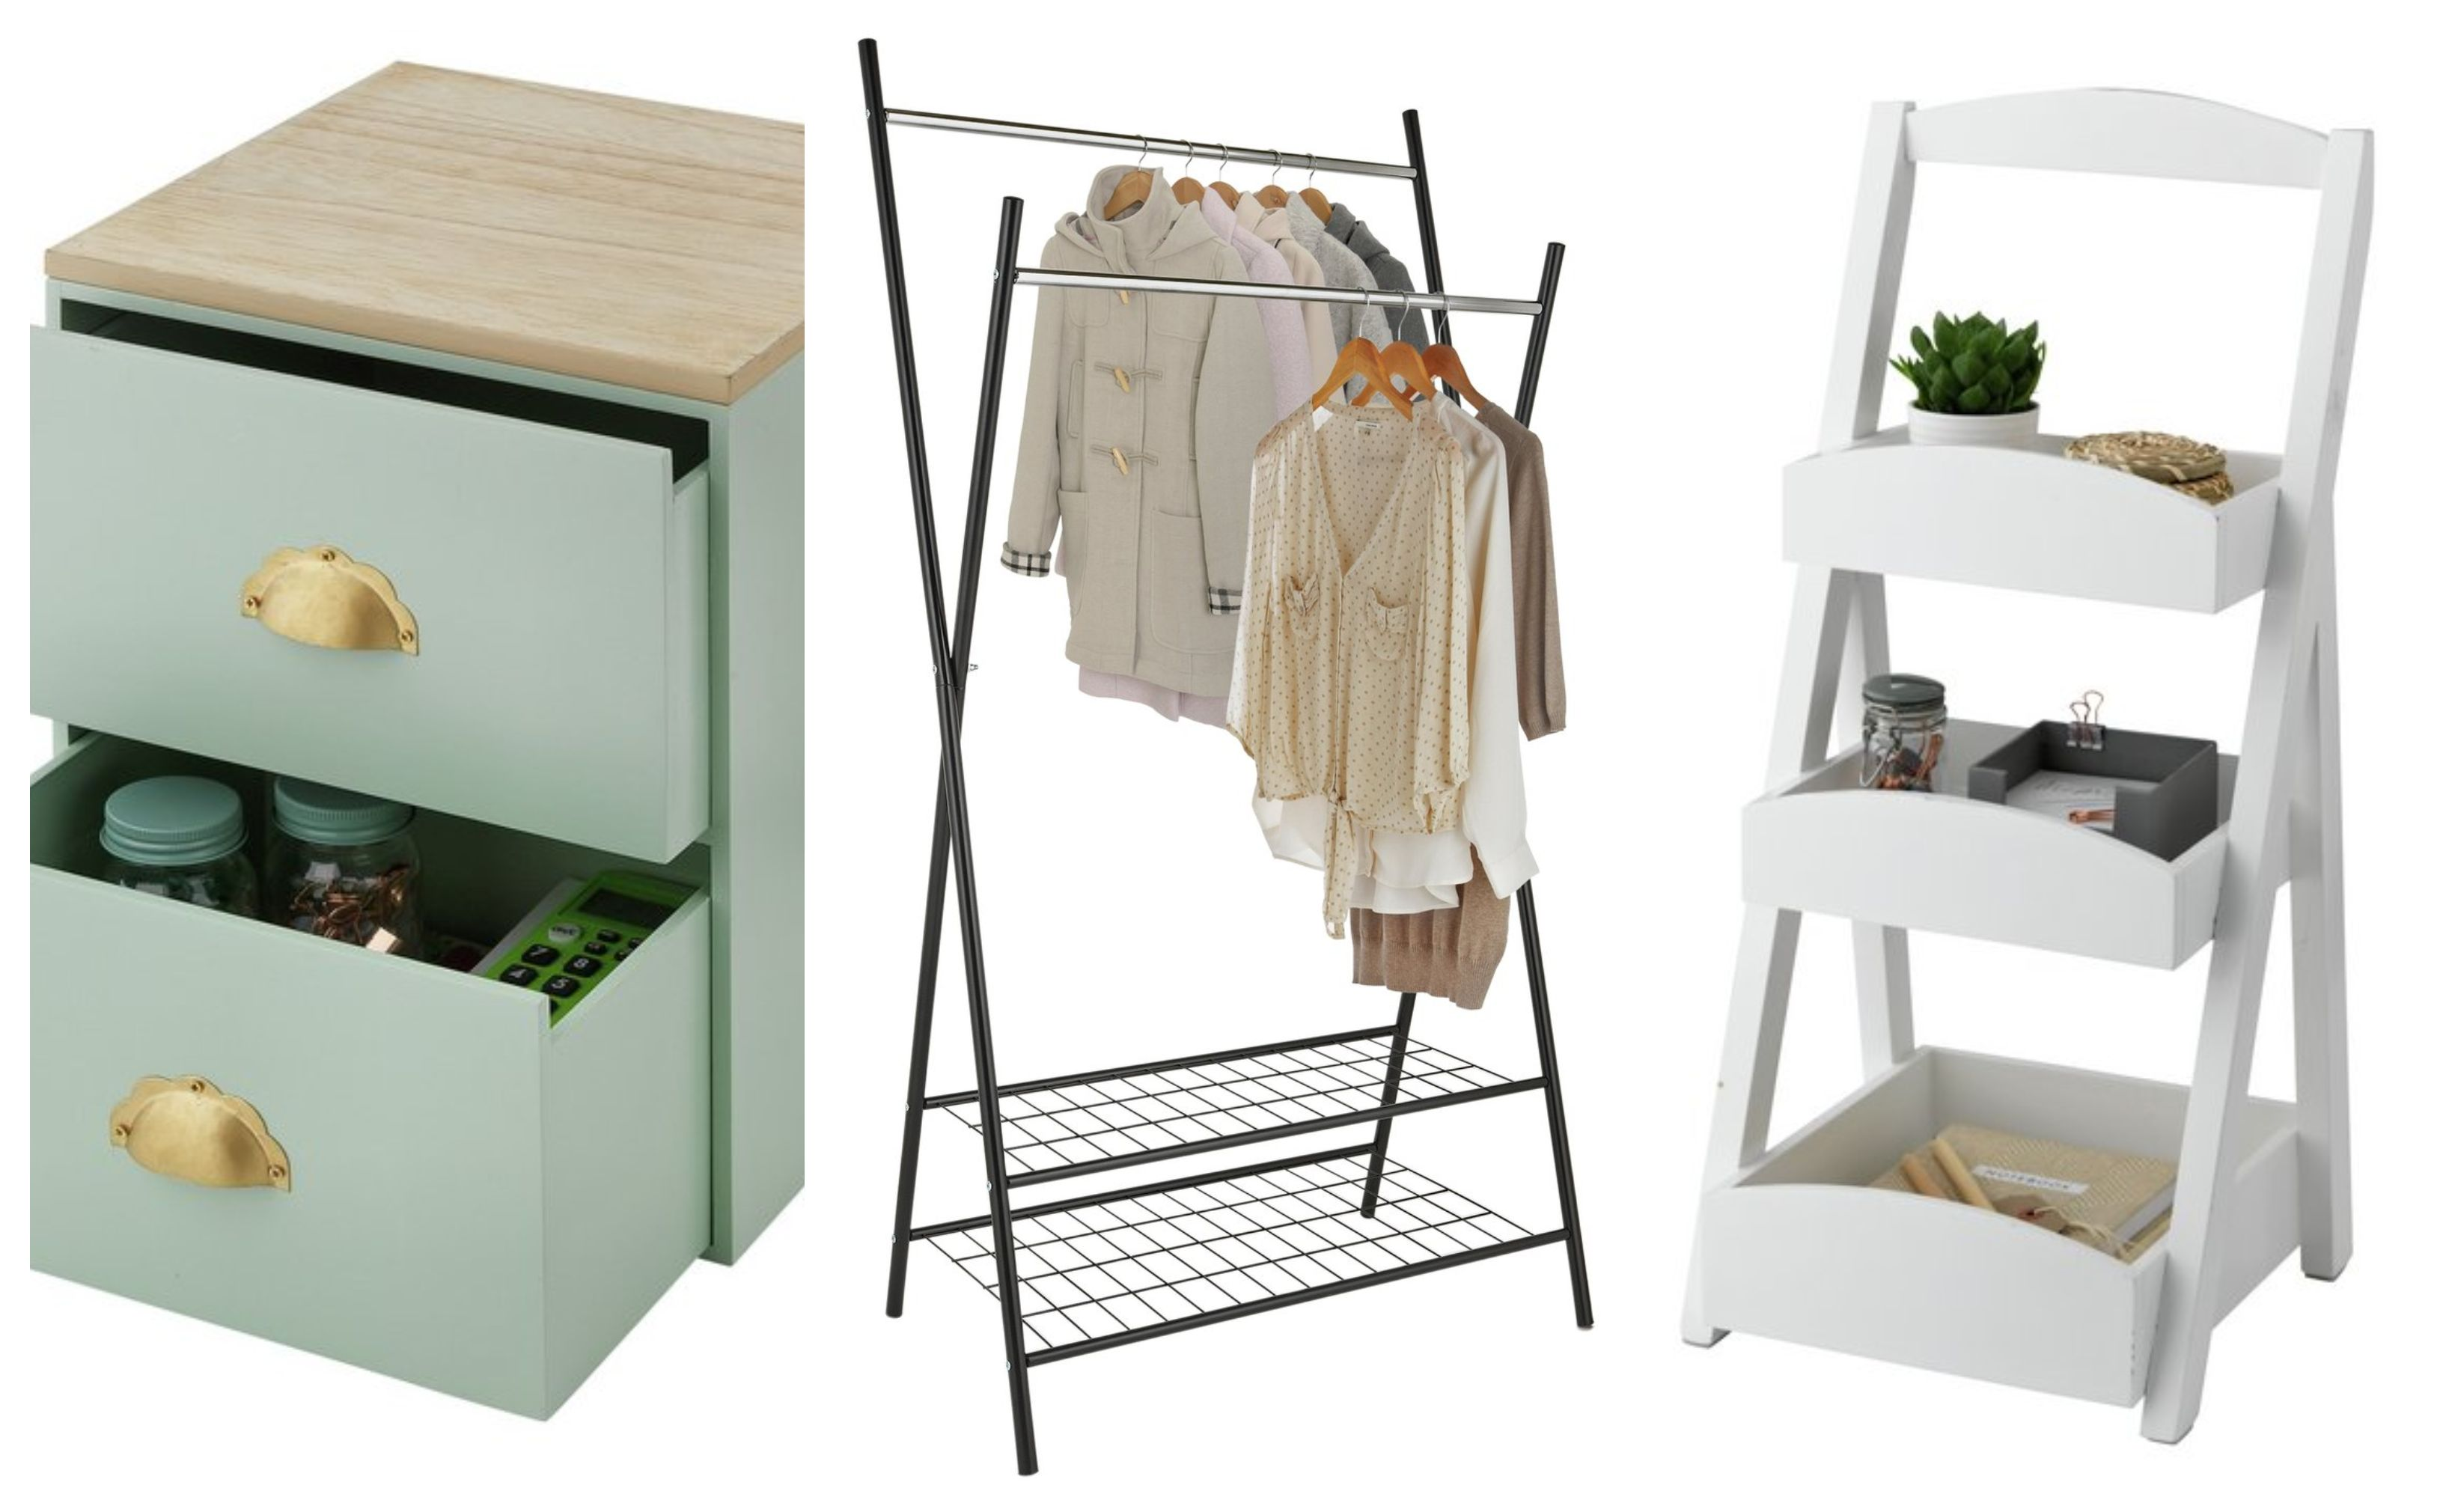 7 Storage Solutions From Argos Perfect For Small Space Living